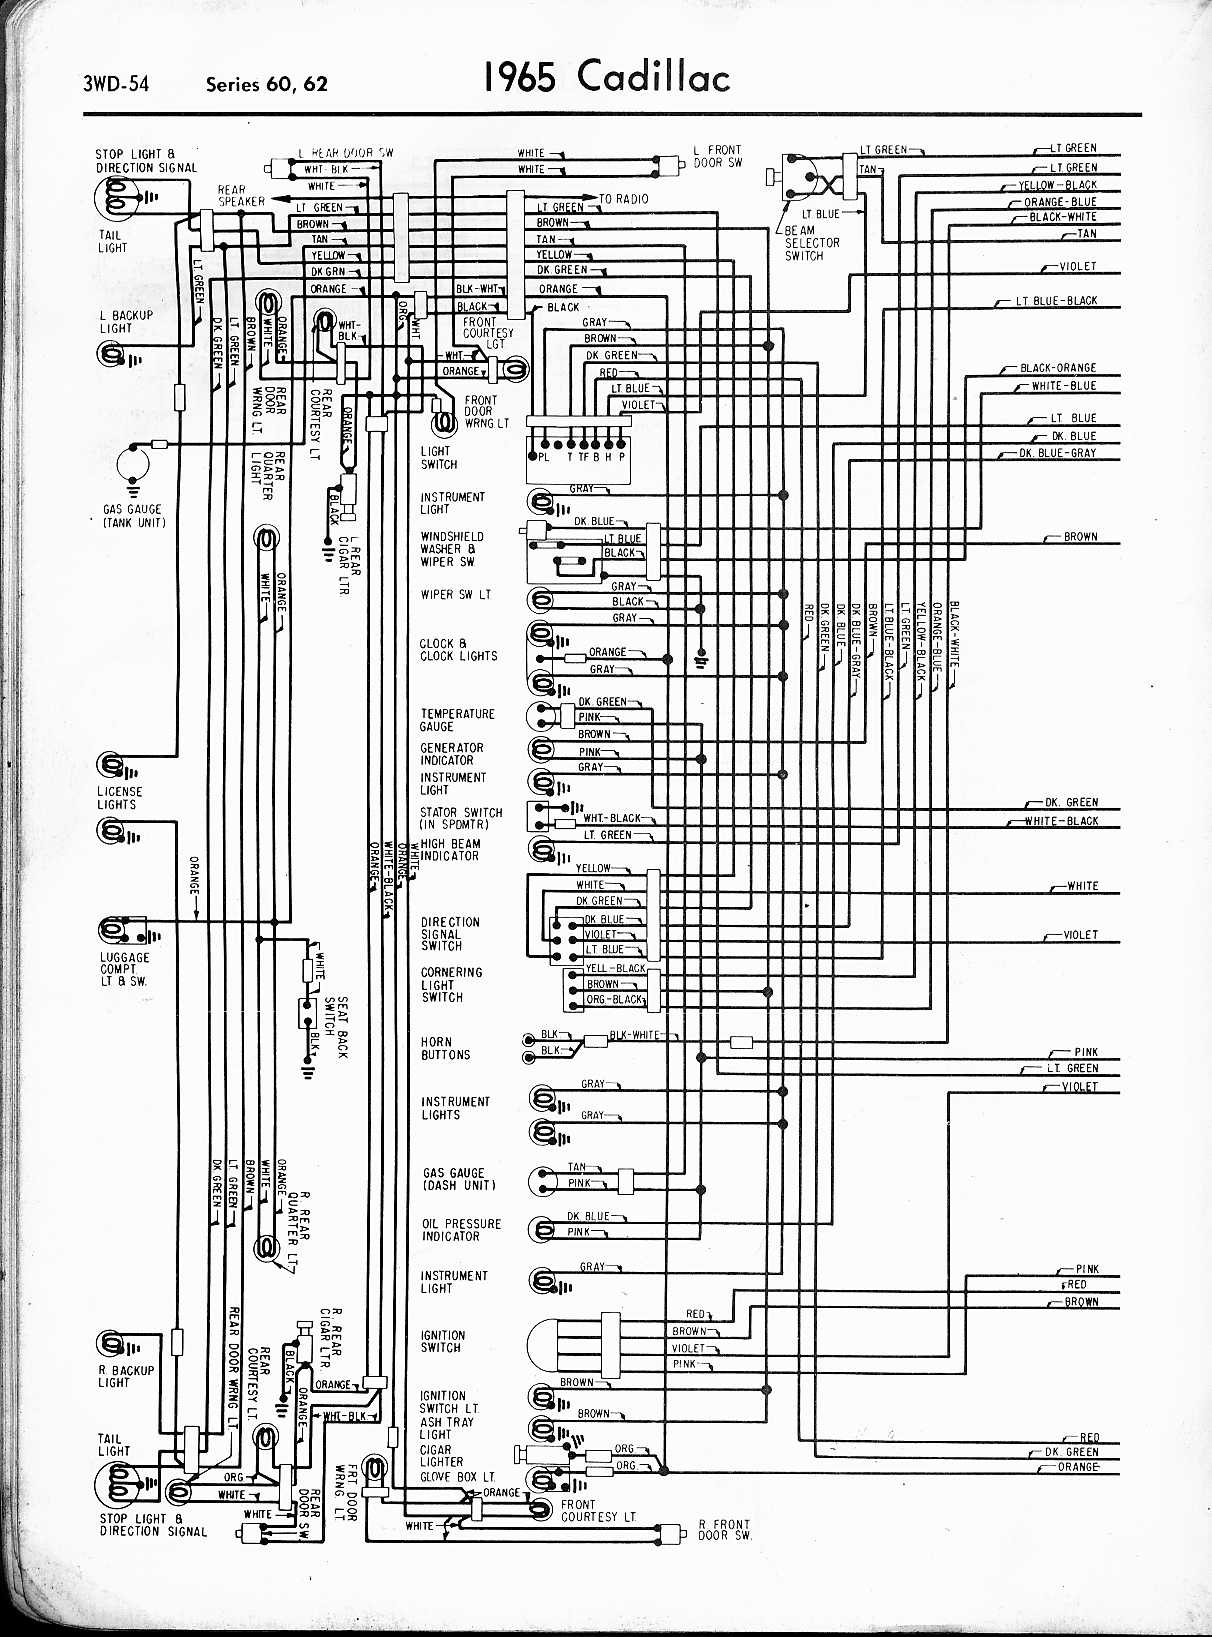 MWireCadi65_3WD 054 1968 cadillac ac wiring diagram data wiring diagram